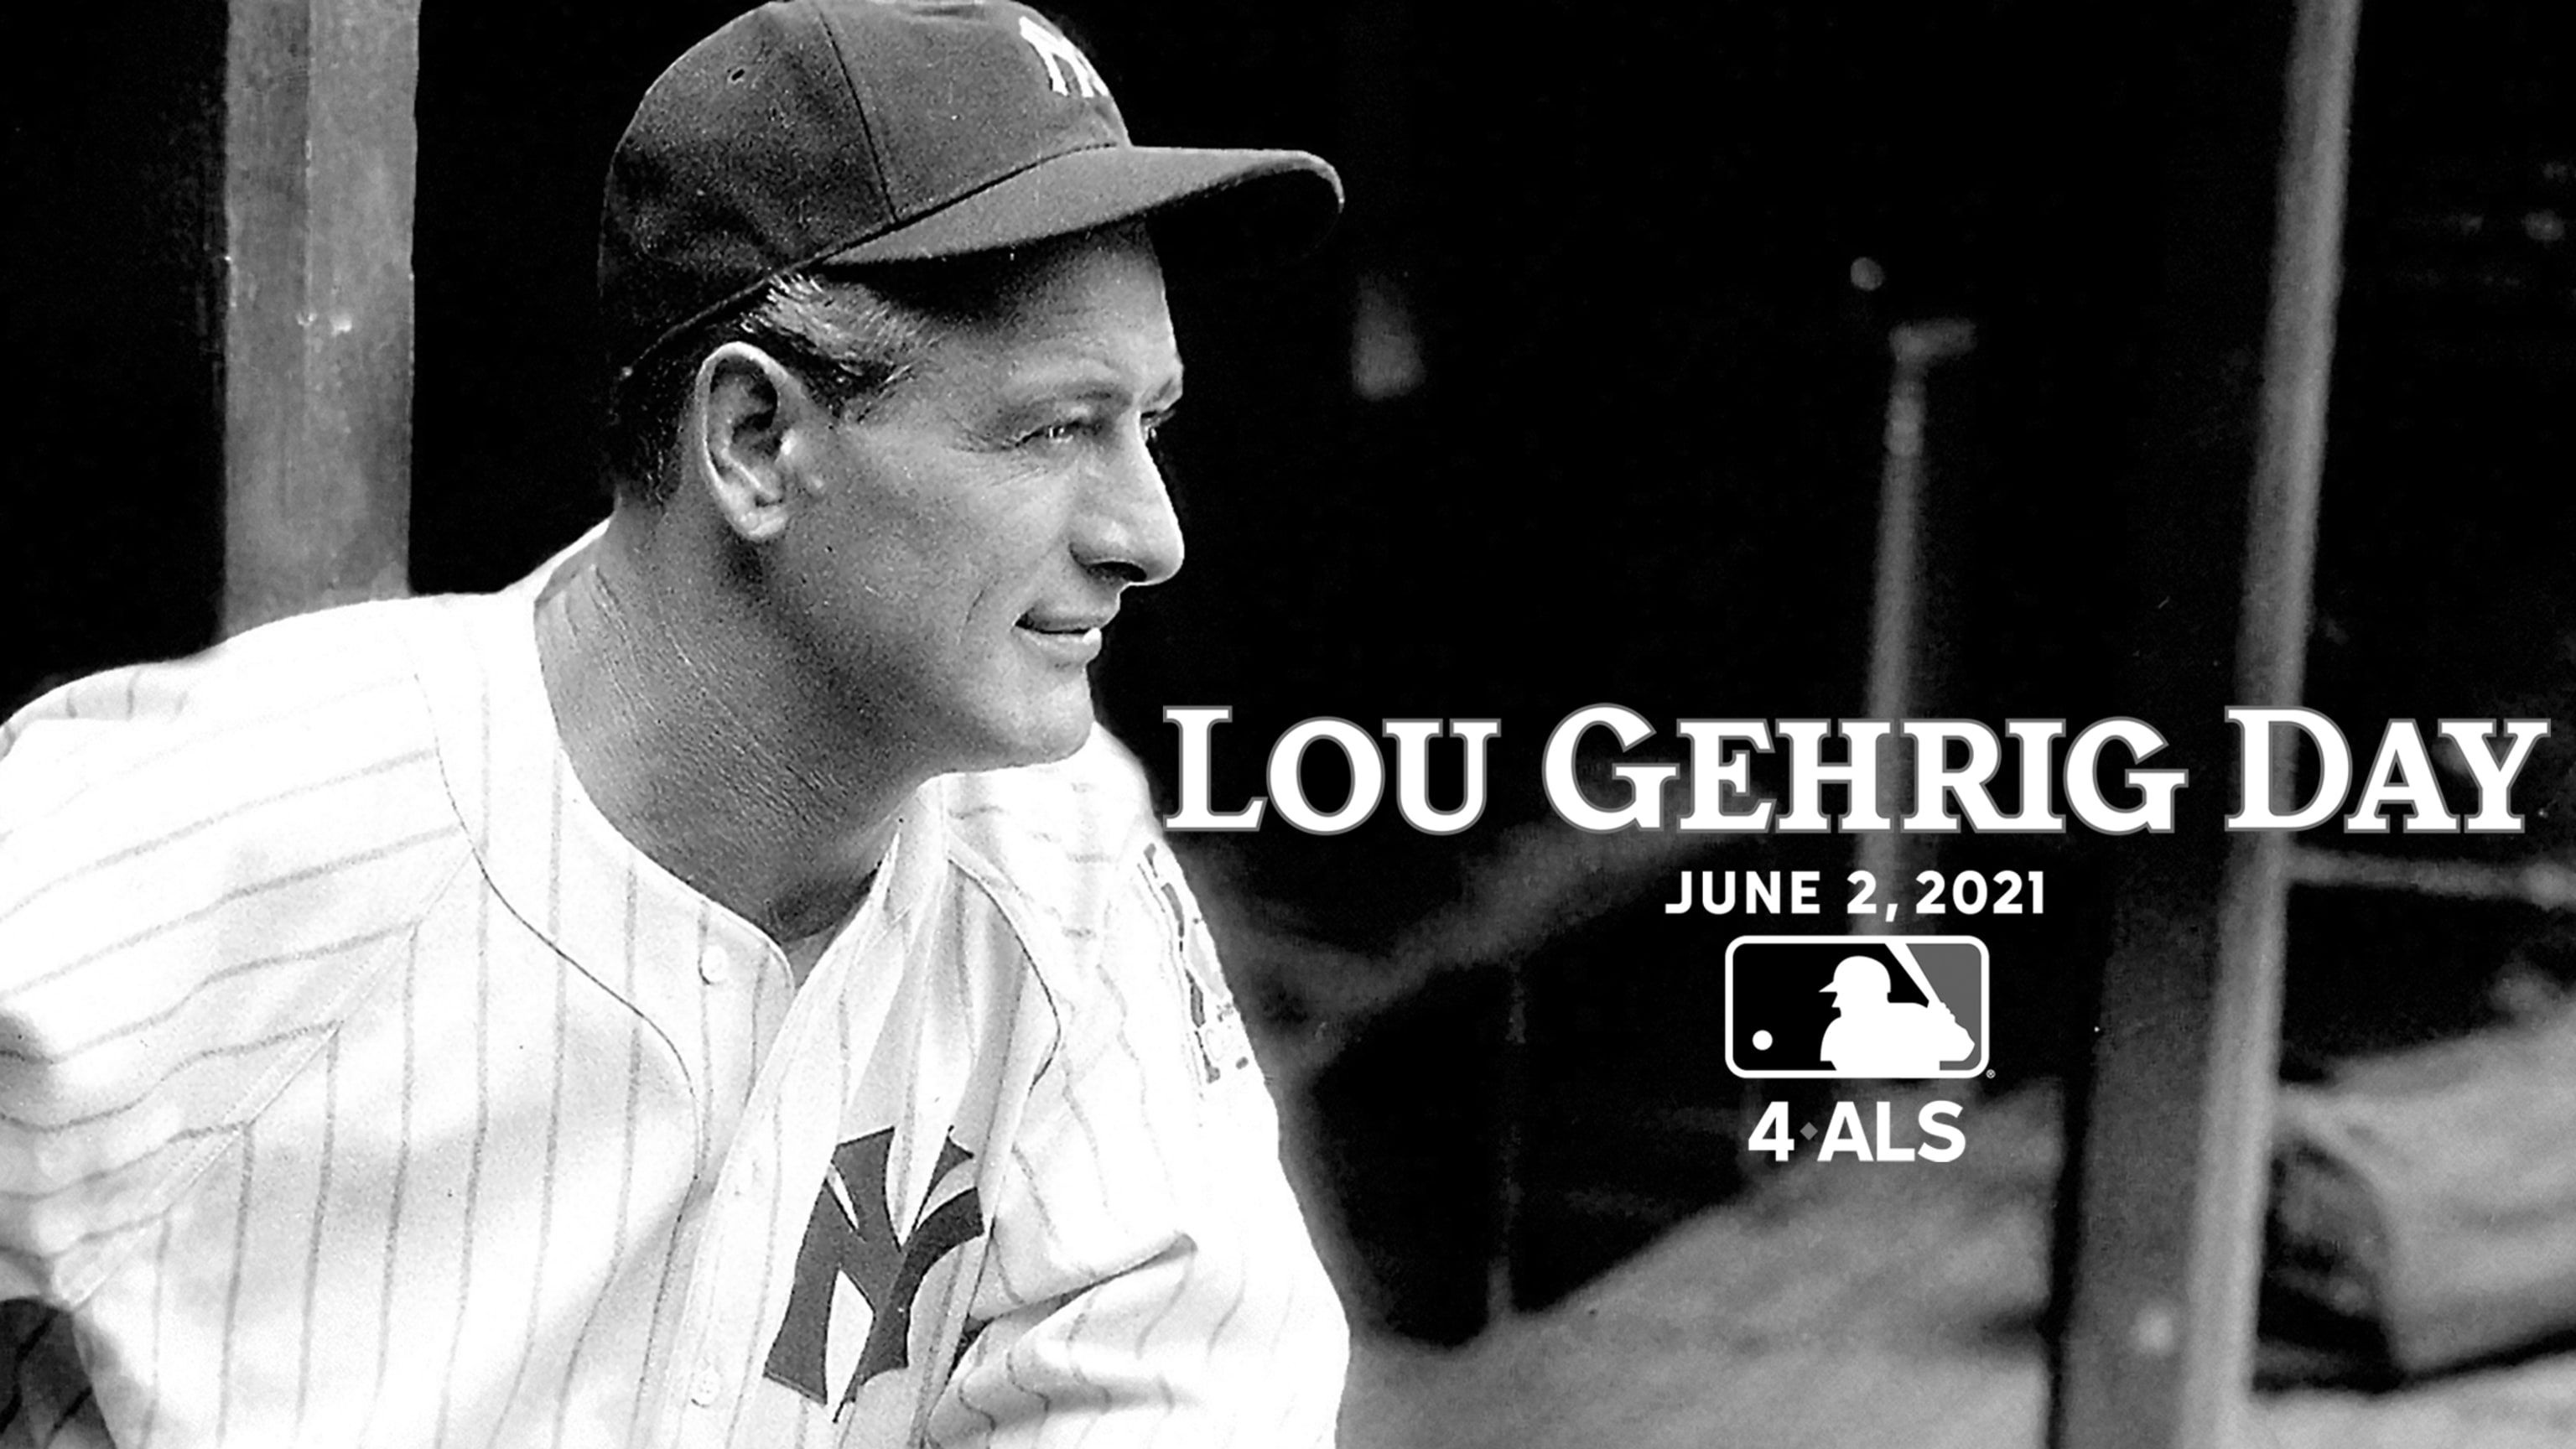 MLB announces Lou Gehrig Day